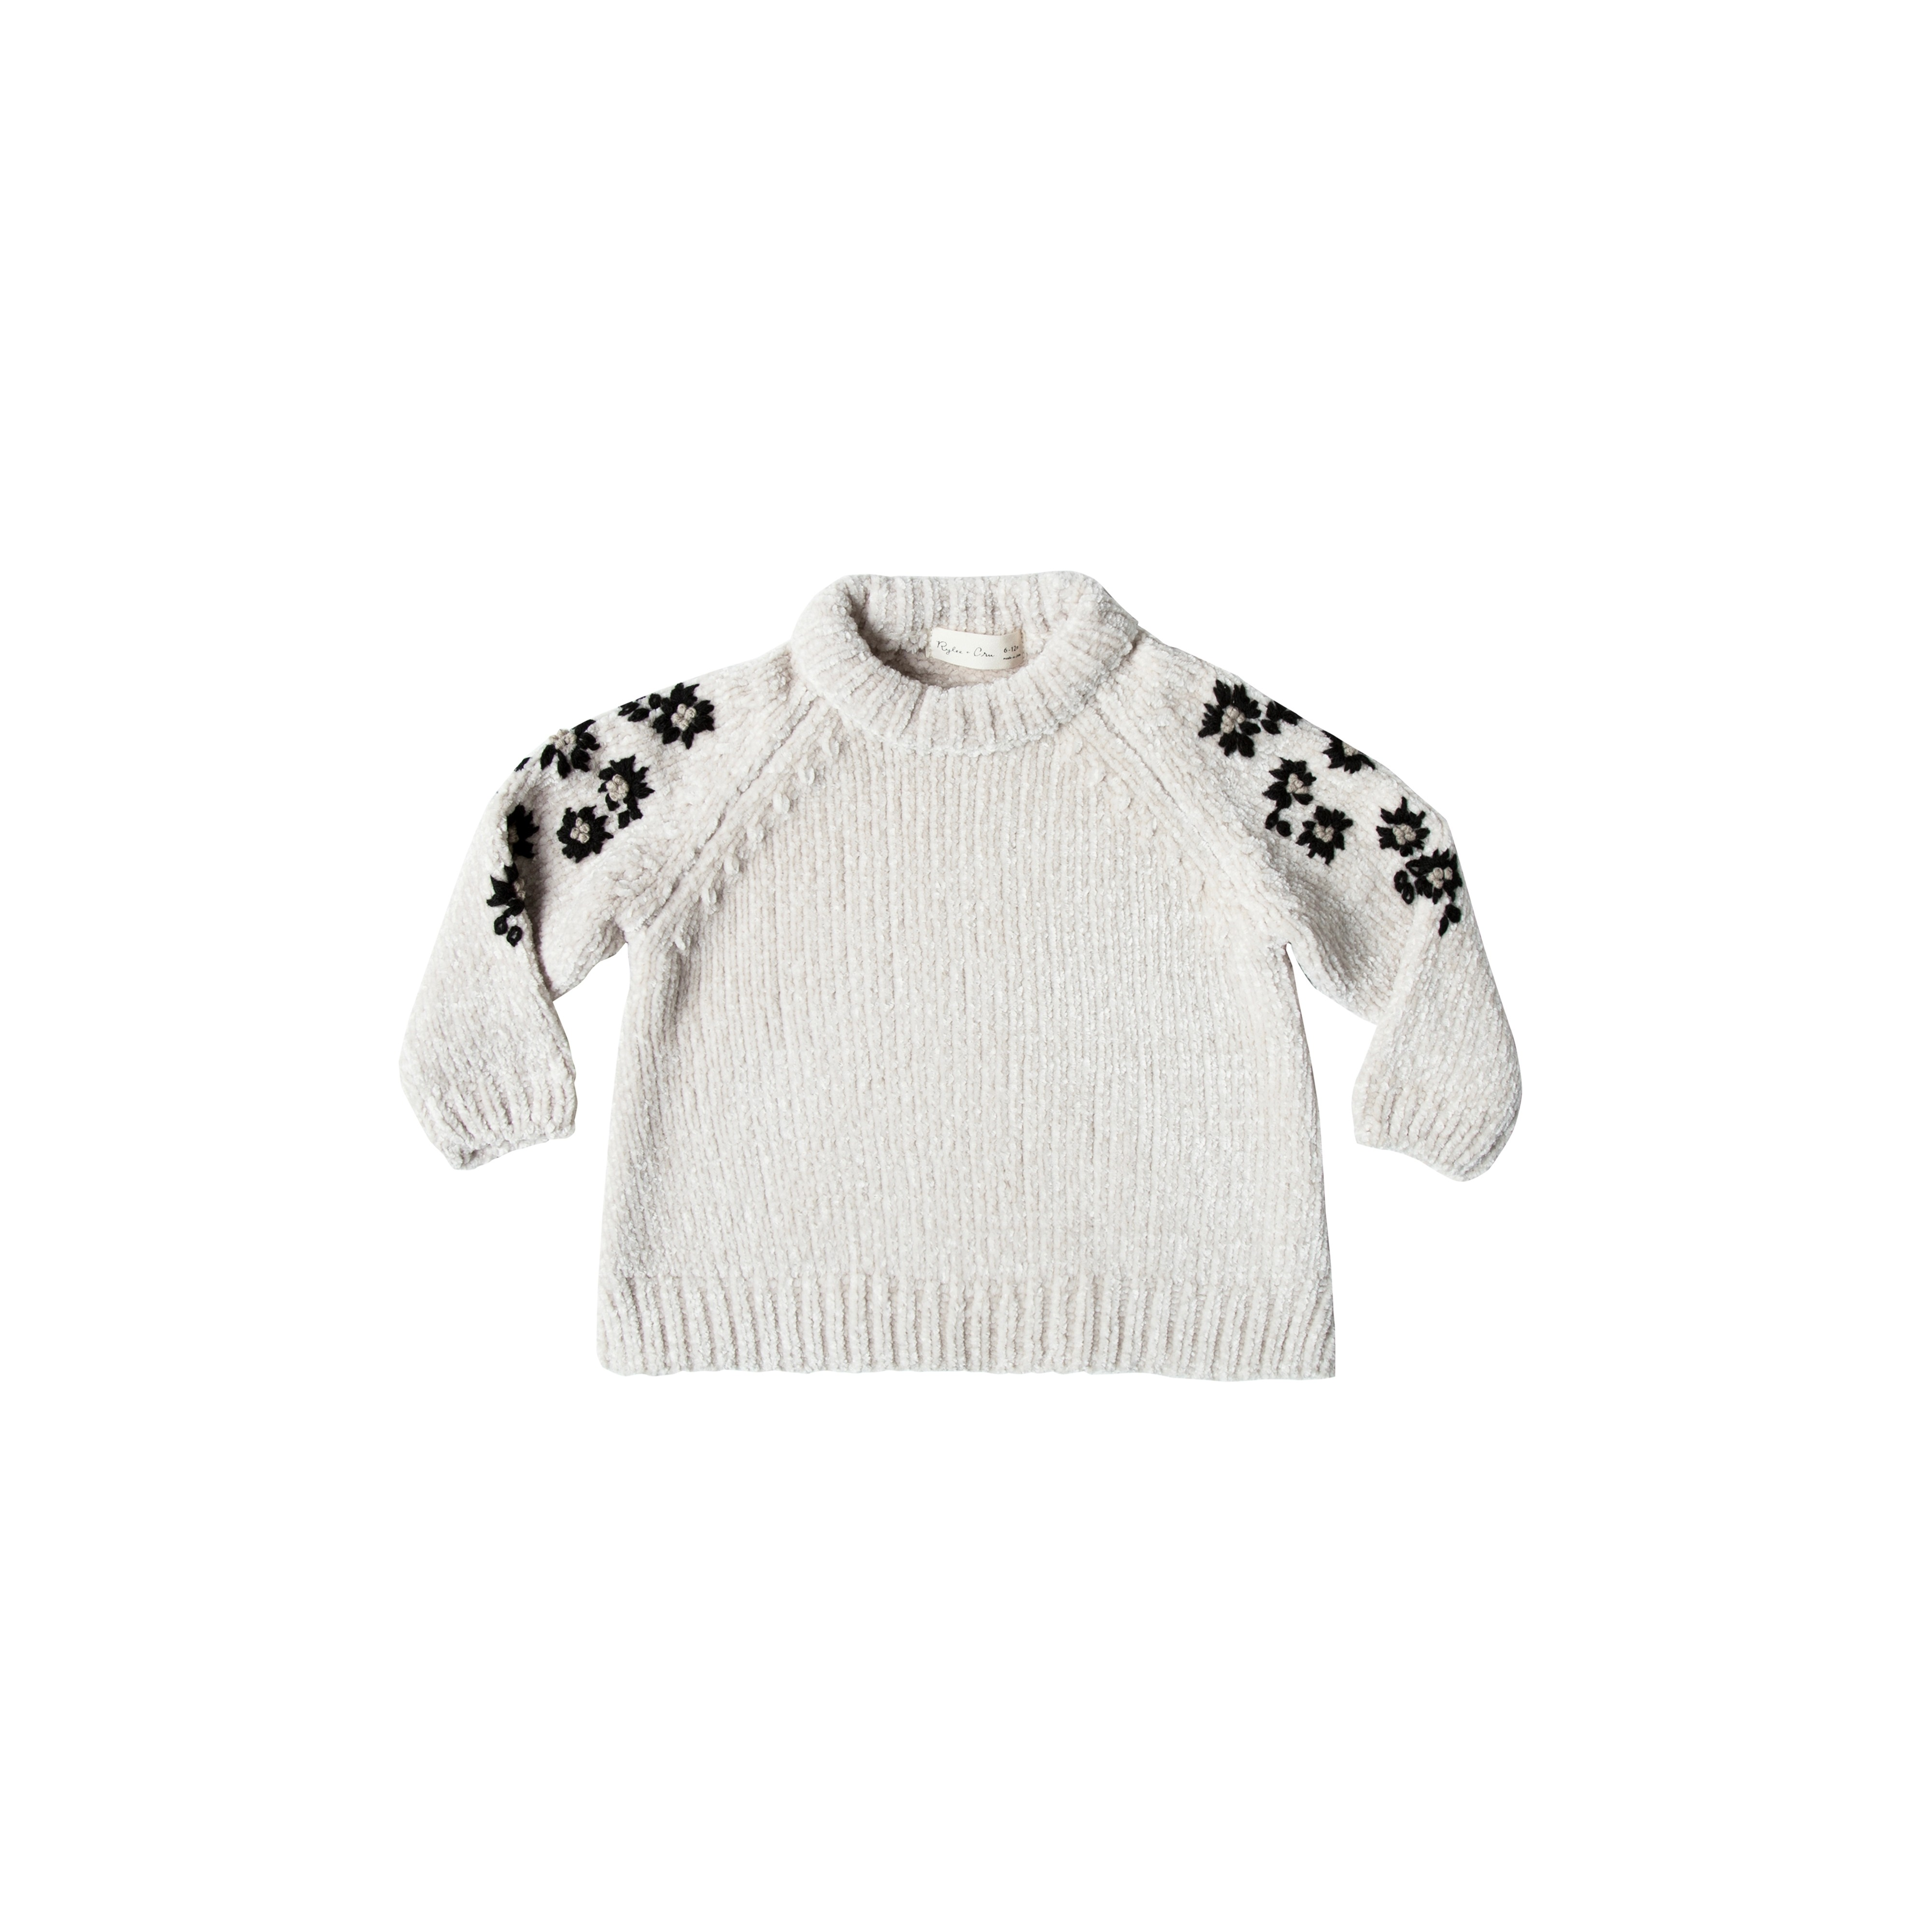 Floral Embroidered Chenille Sweater